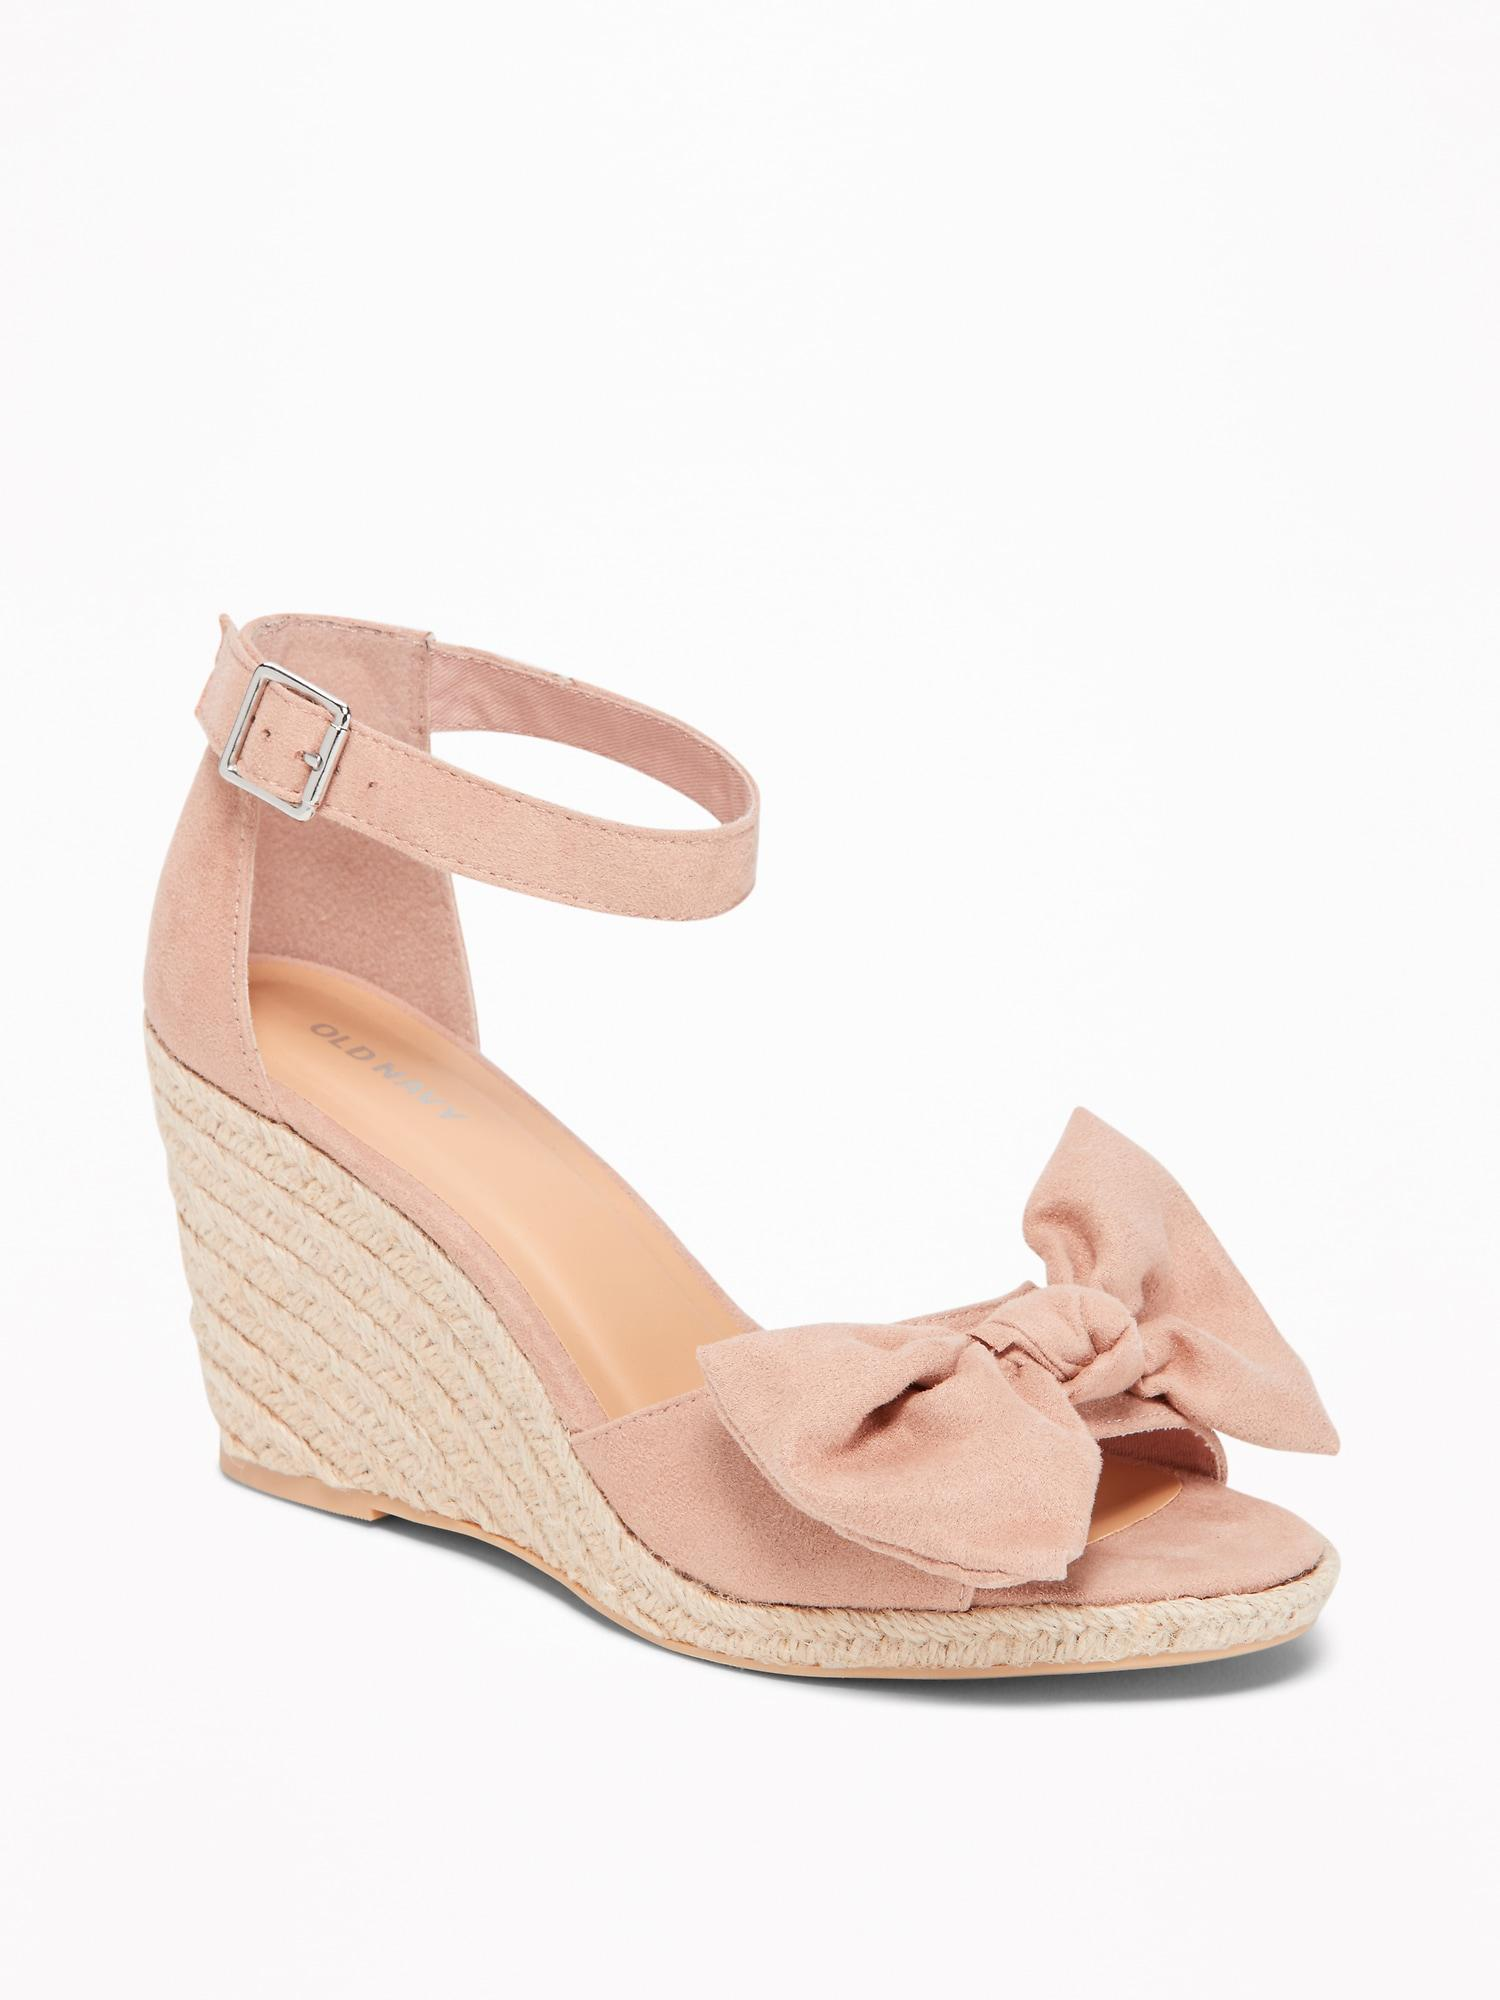 b6d06487056 Lyst - Old Navy Sueded Bow-tie Espadrille Wedges in Pink